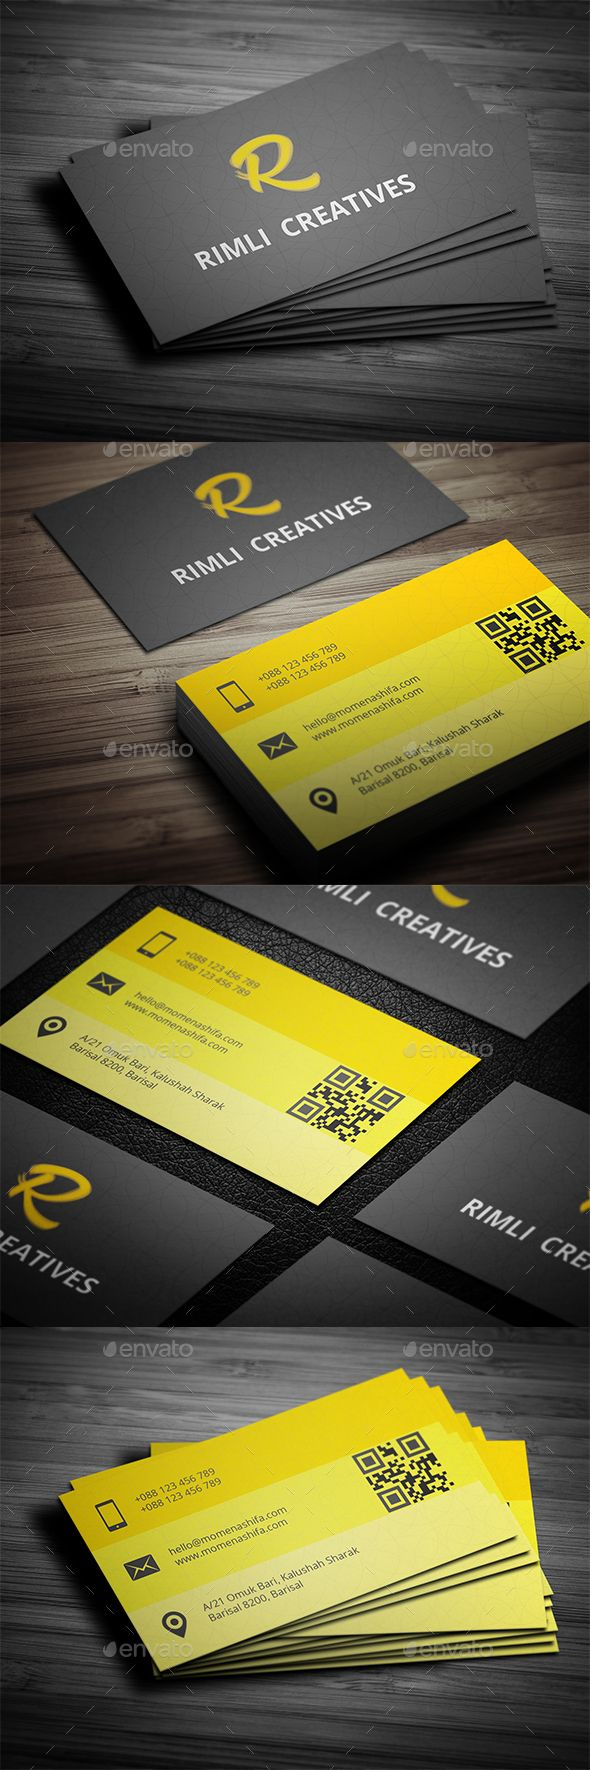 Sleek business card design business cards card templates and graphicriver only 5 sleek business card design creative business cards magicingreecefo Choice Image